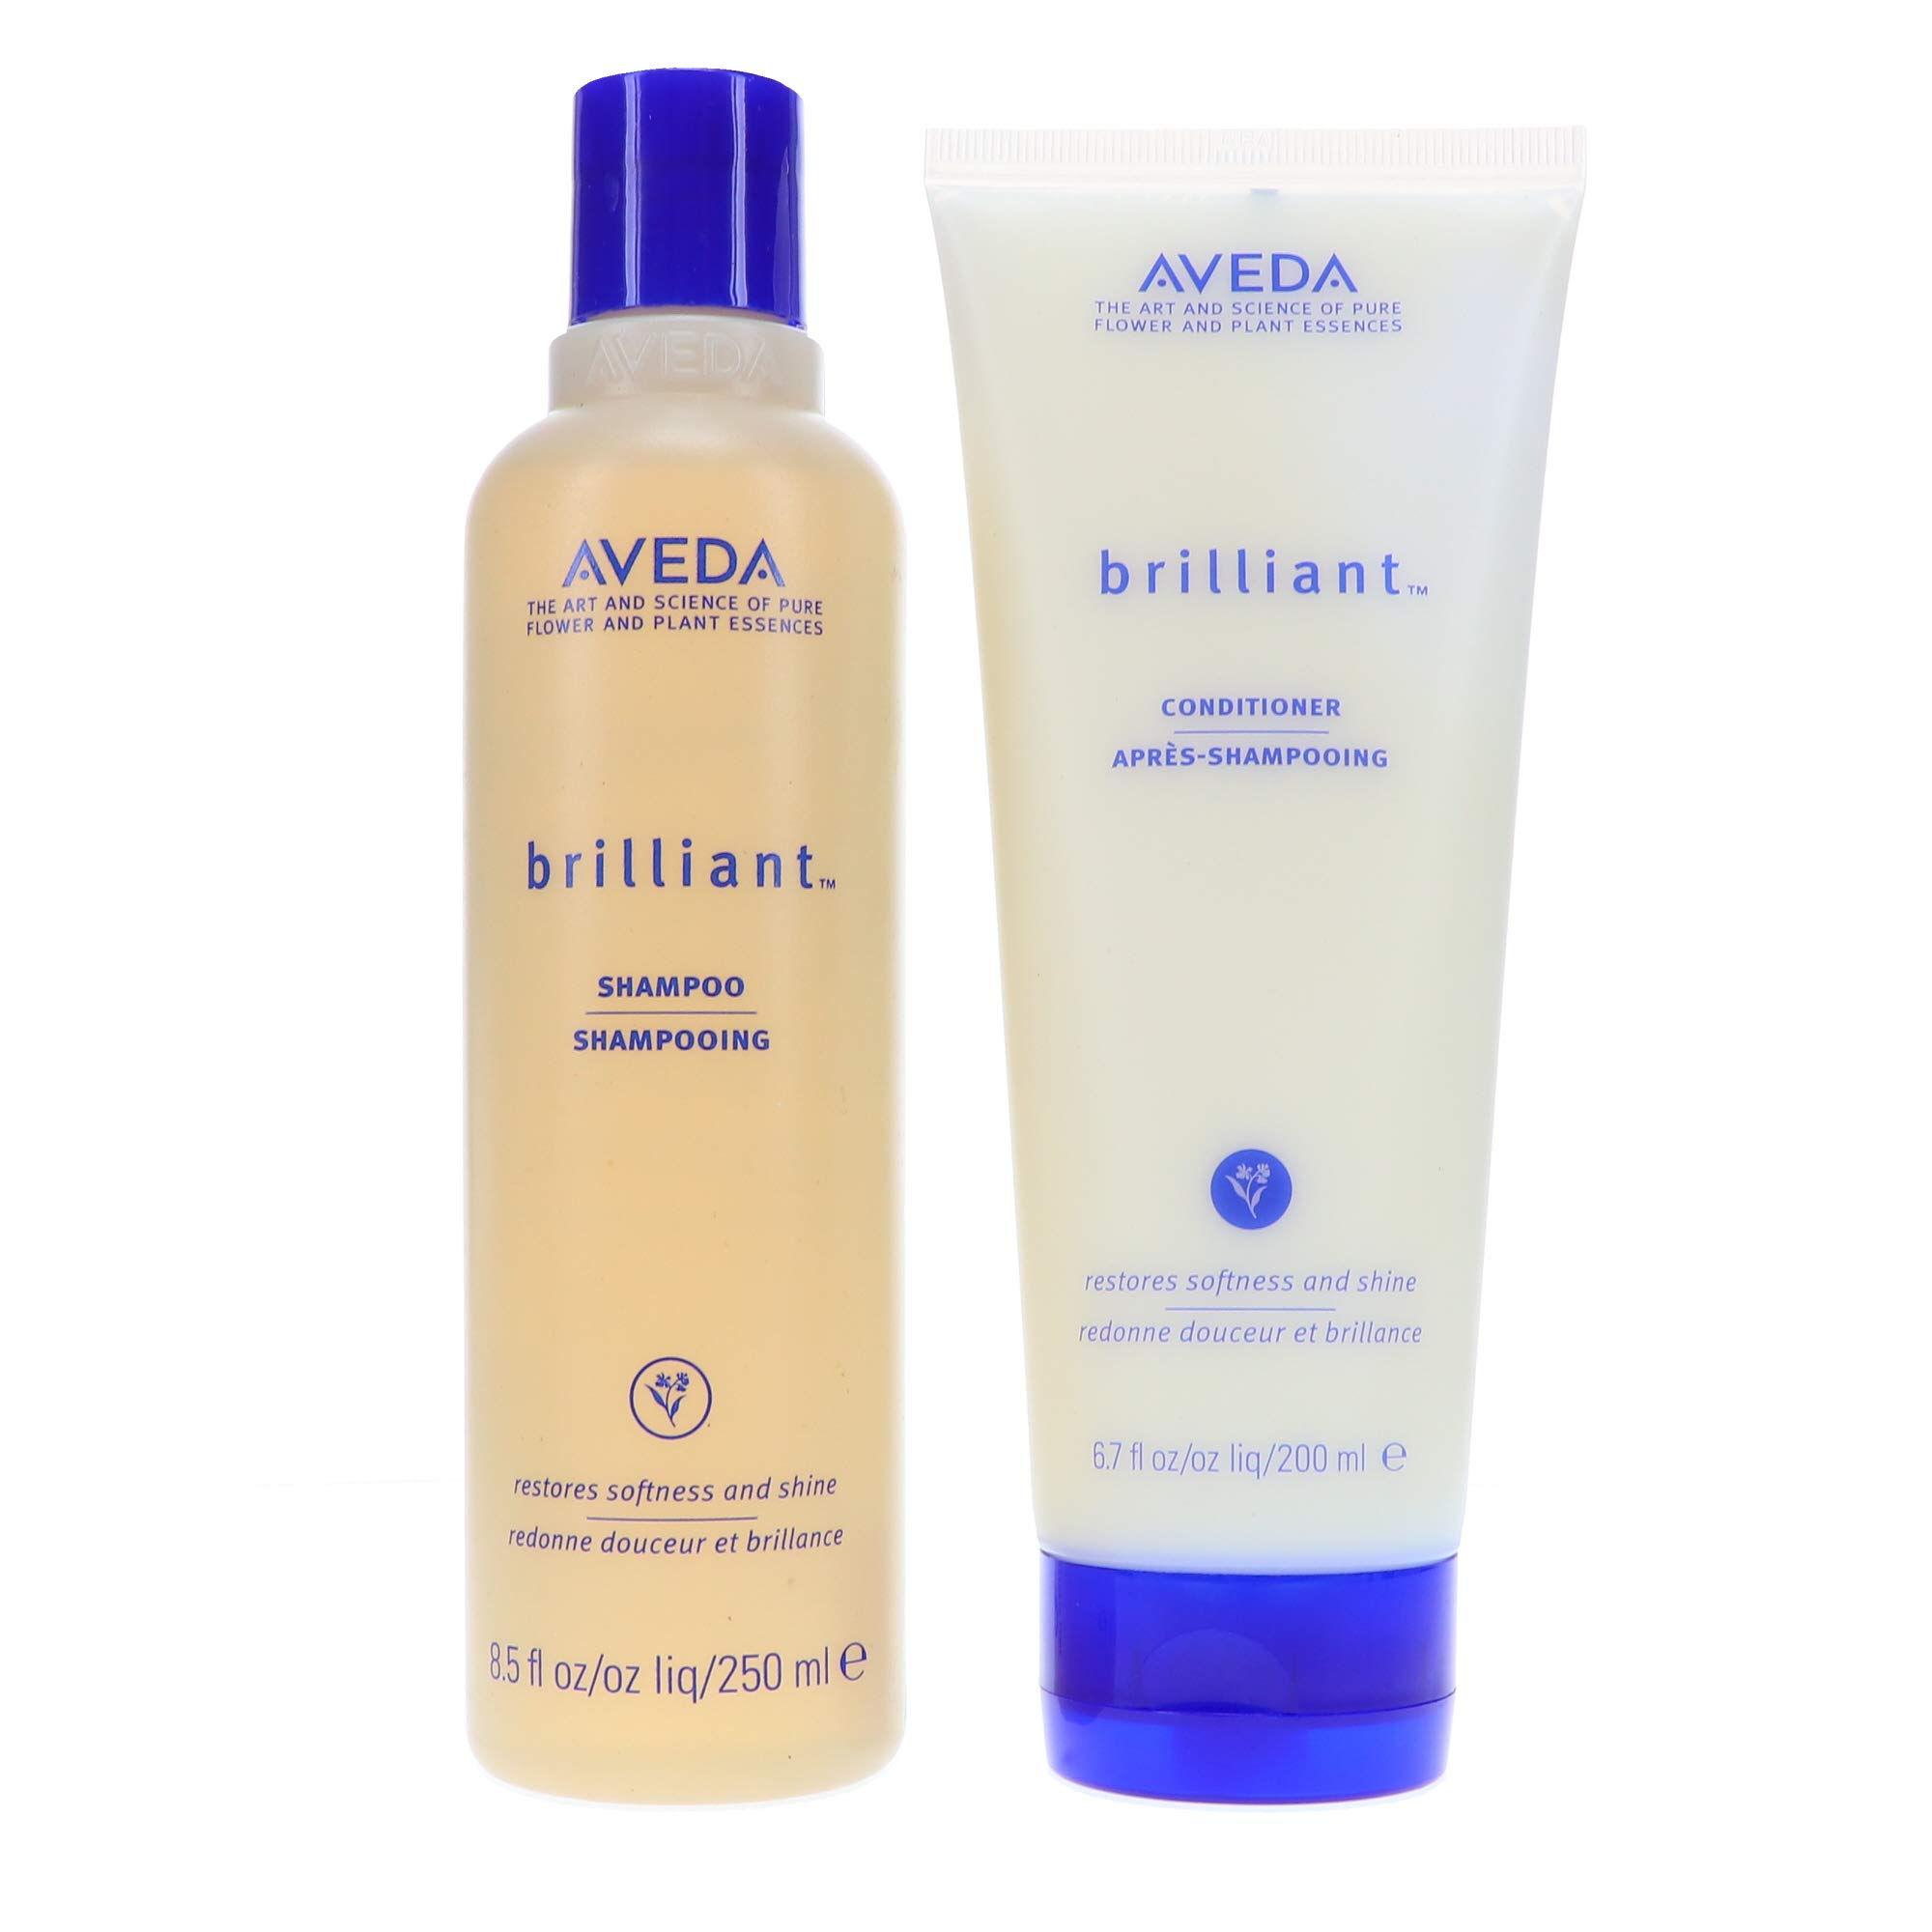 Aveda Brilliant Shampoo 8.5 oz & Conditoner 6.7 oz Duo Set